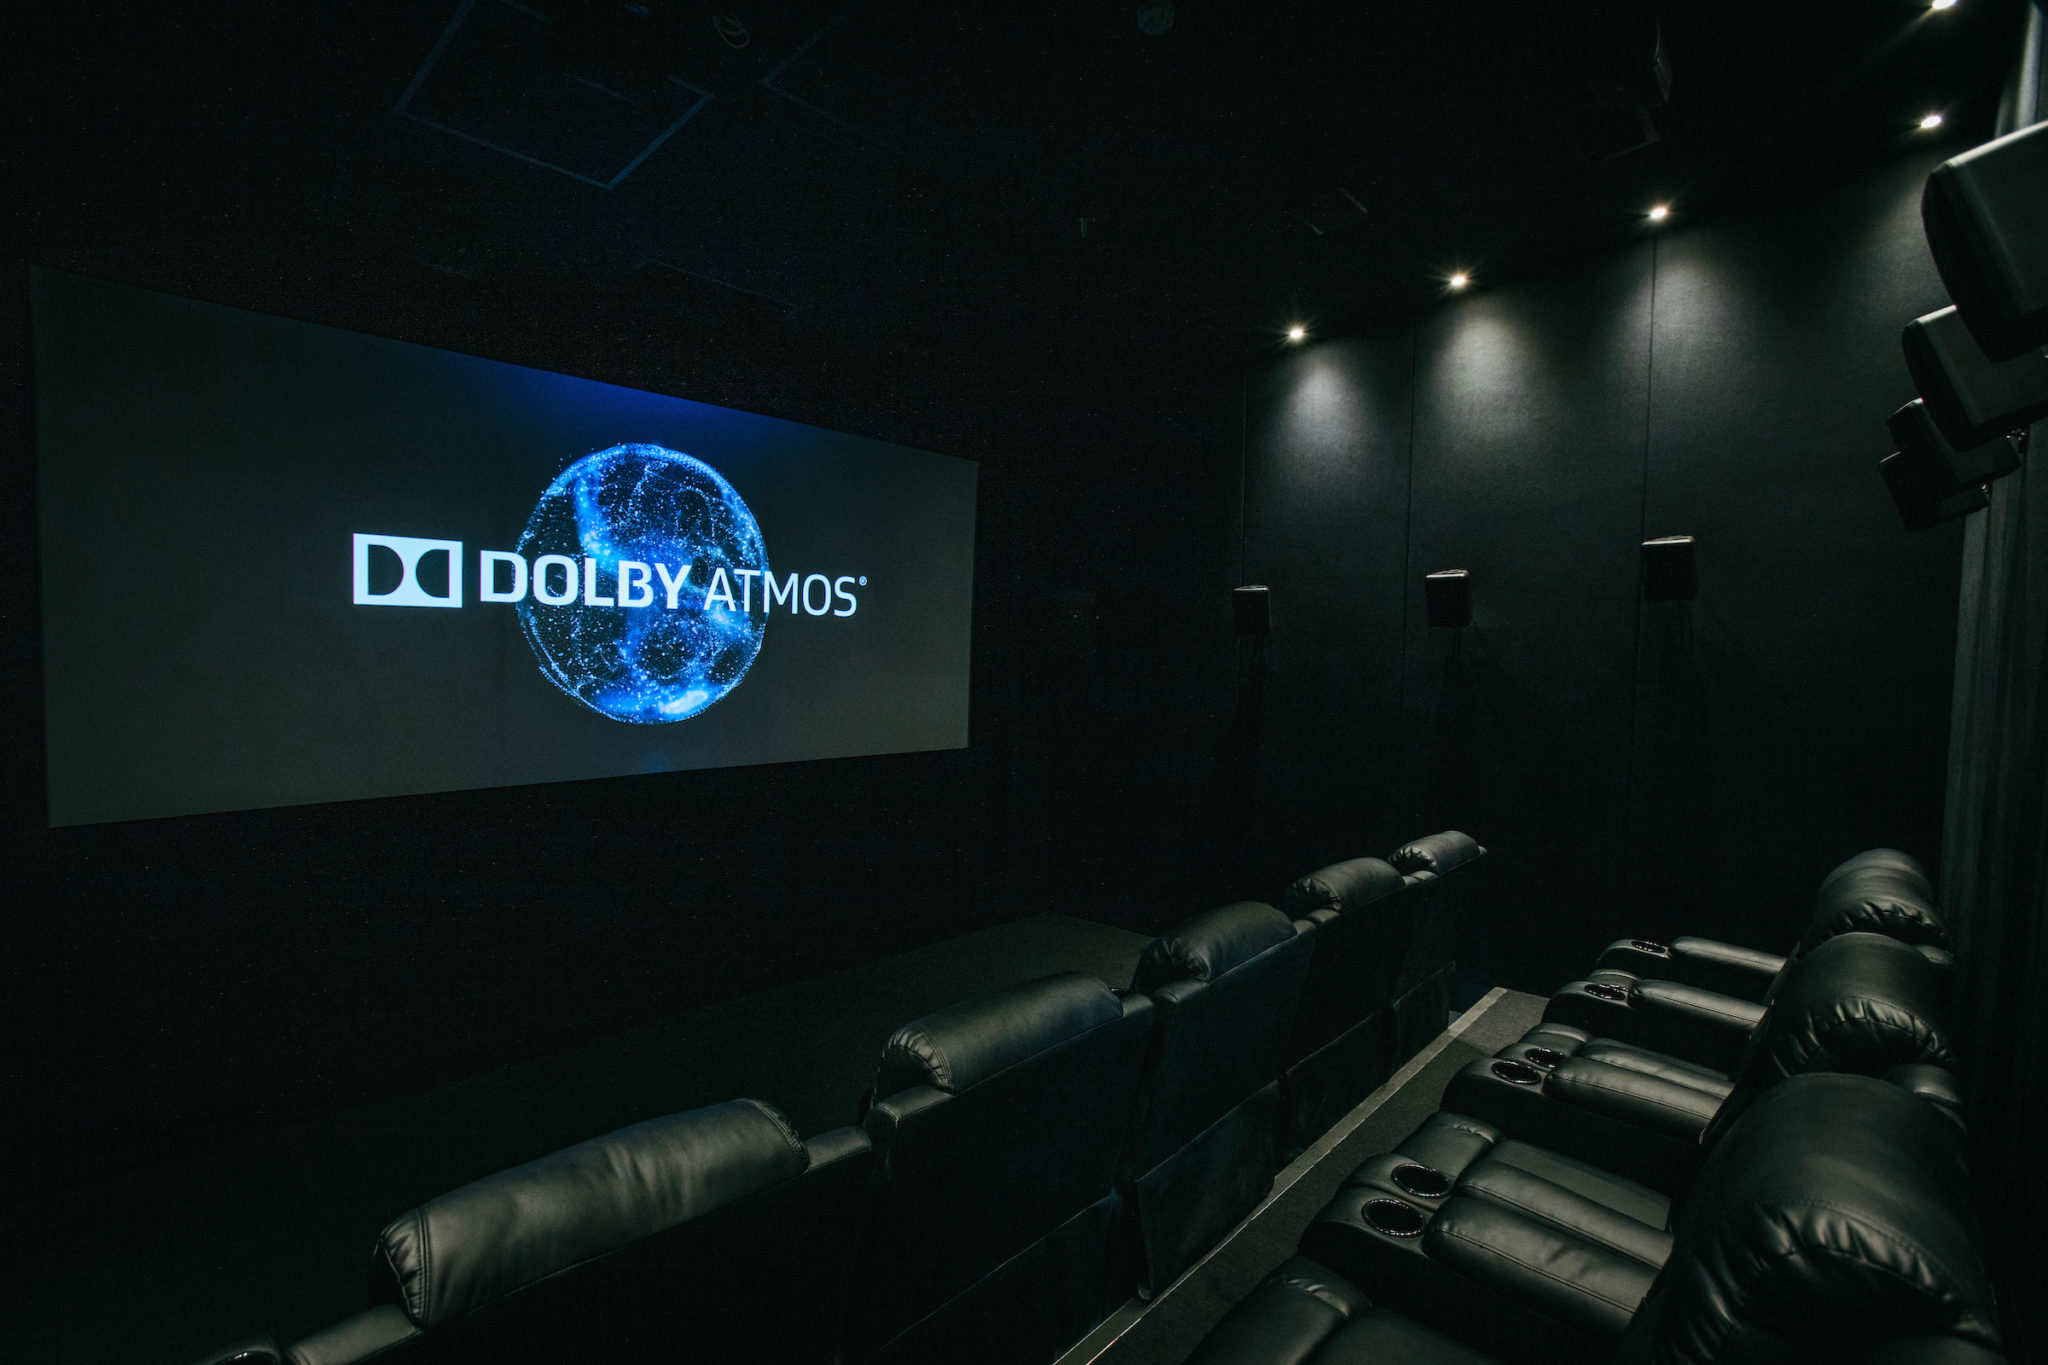 A new 4K screening room at Visual Data Media Services in West London